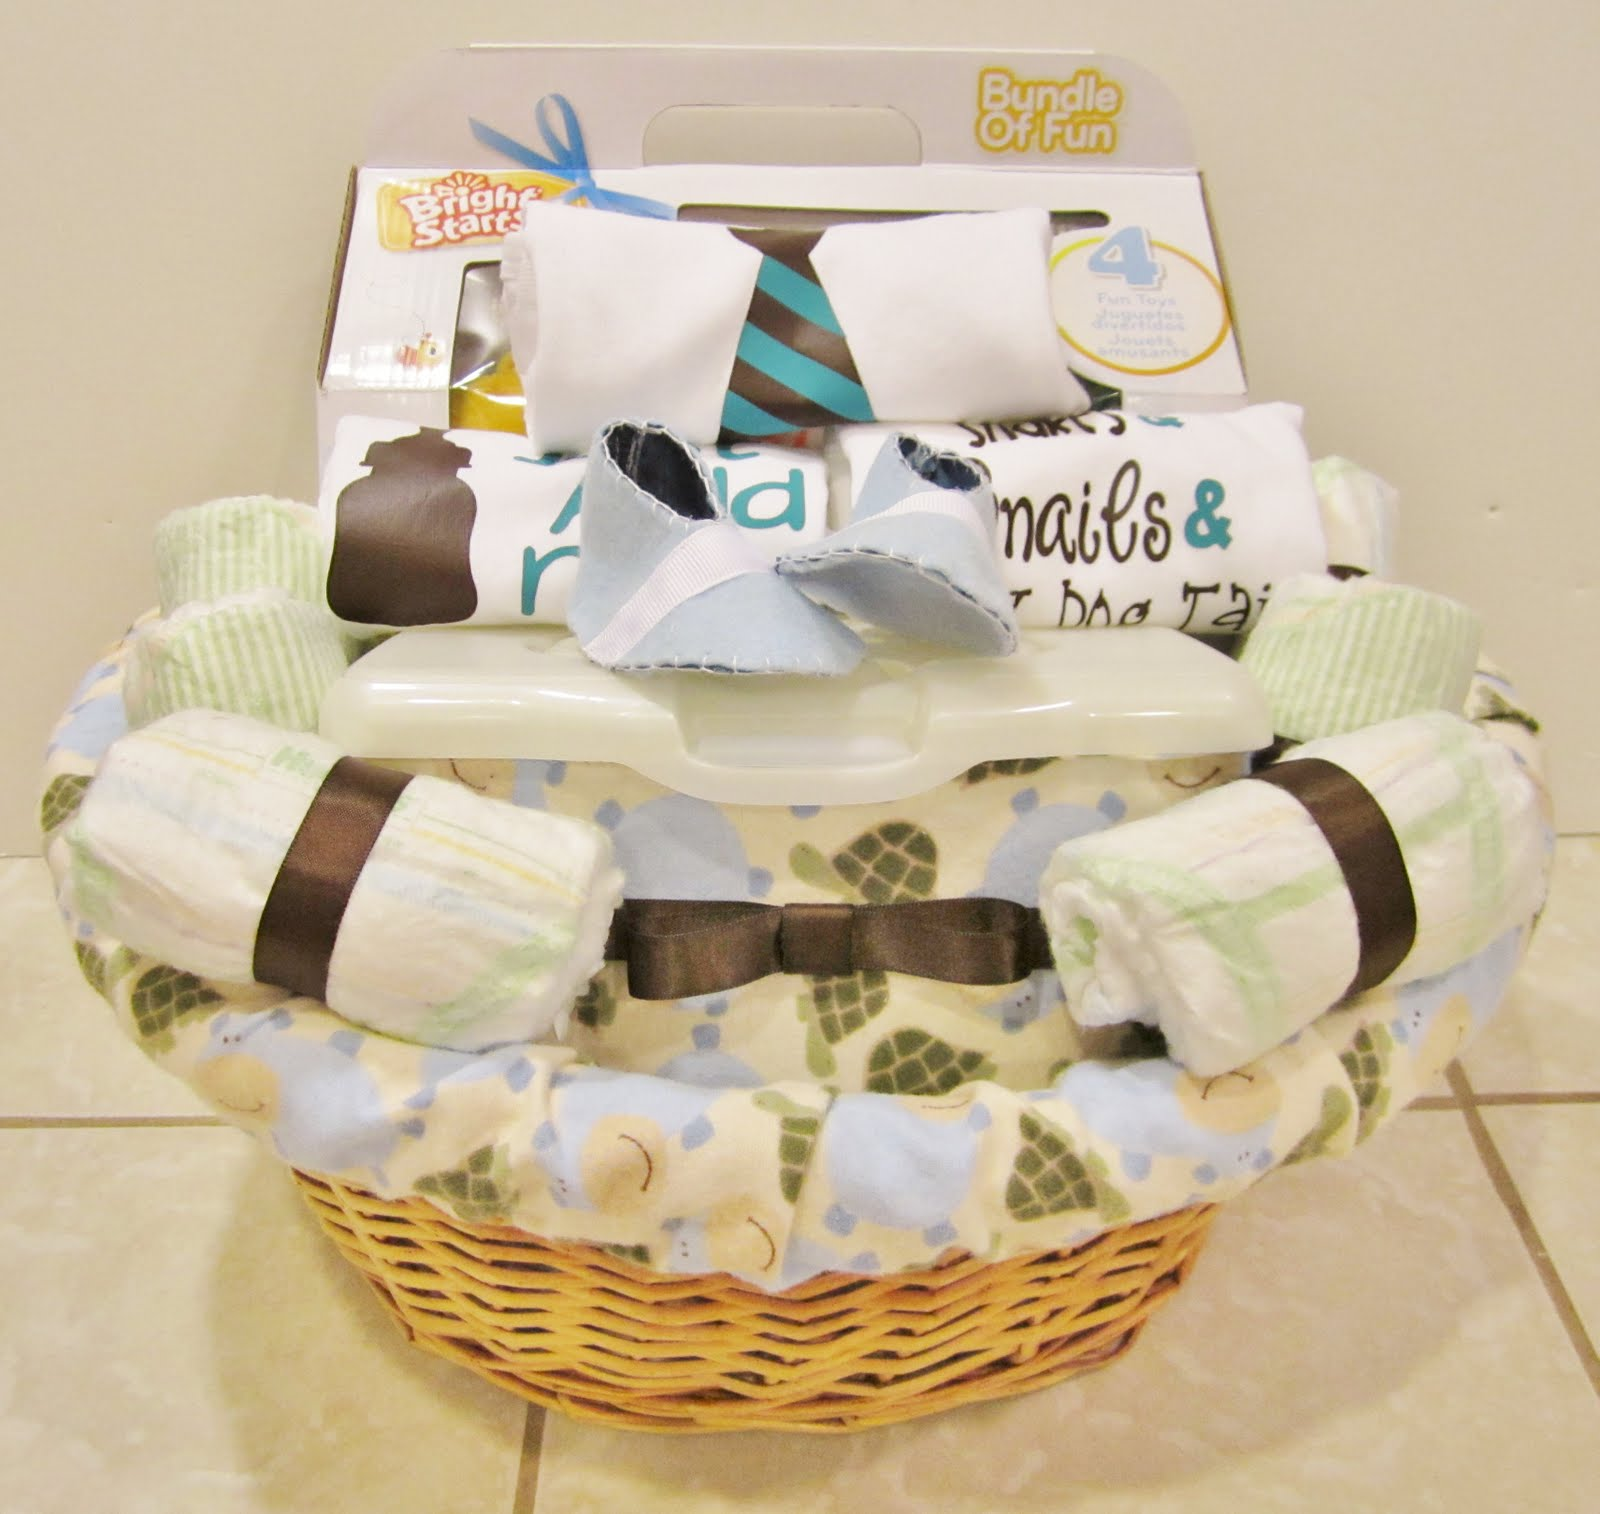 Full Size of Baby Shower:enamour Baby Shower Gifts For Guests Picture Ideas Baby Shower Gifts For Guests And Ideas Para Baby Showers With Baby Shower Cakes Plus Baby Shower Names Together With Surprise Baby Shower As Well As Arreglos Baby Shower Niño